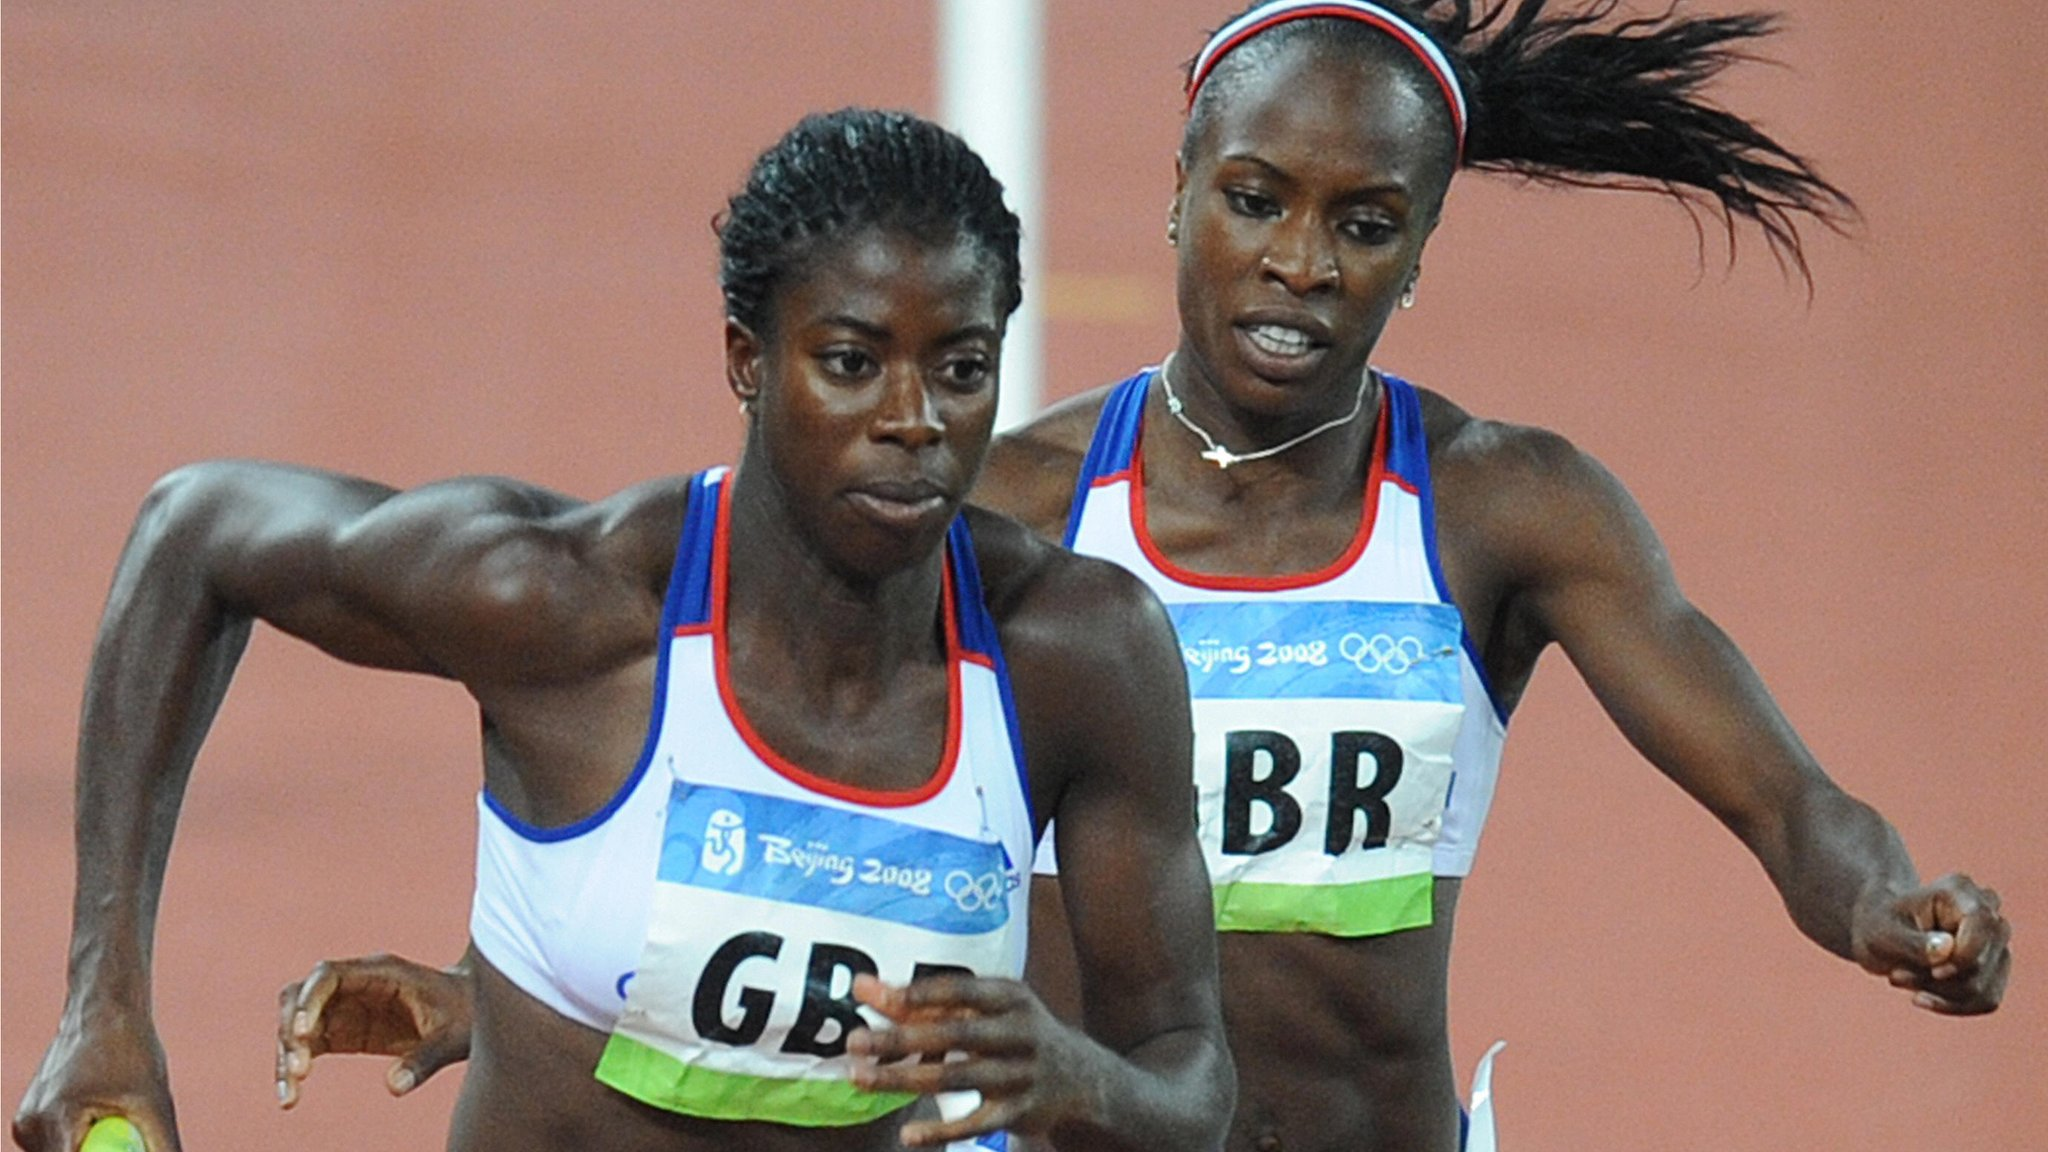 Great Britain's 2008 4x400m women's relay team to get Olympic bronzes on Saturday